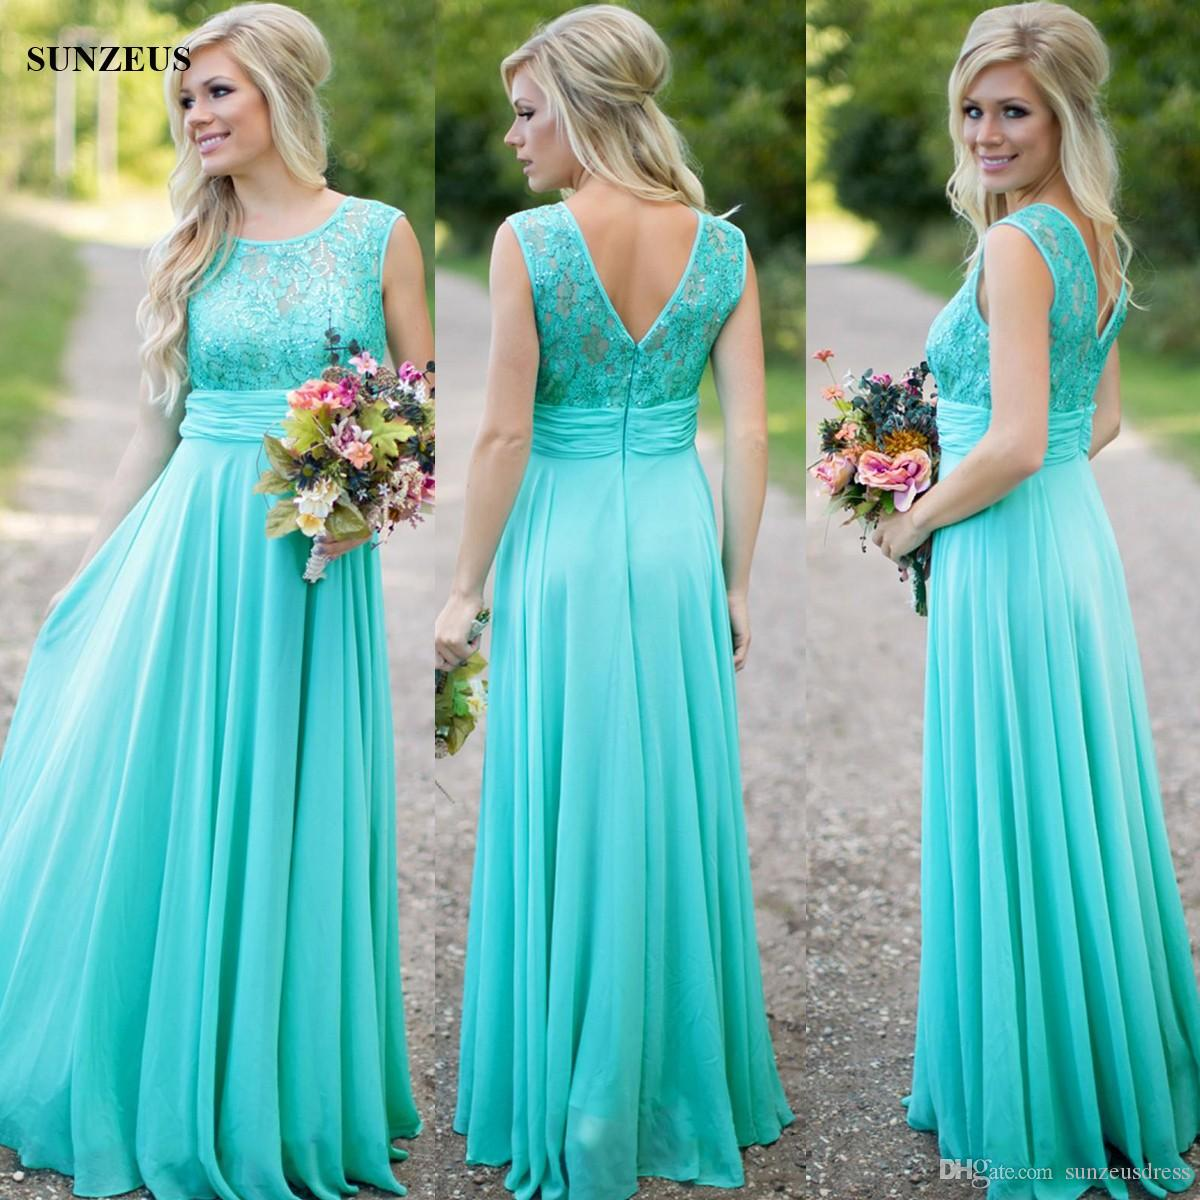 Turquoise Chiffon Bridesmaid Dresses Sequins Lace Top Long Wedding Party Gowns Formal Wear Vestido Color Turquesa Monique Lhuillier Bridesmaid Dresses